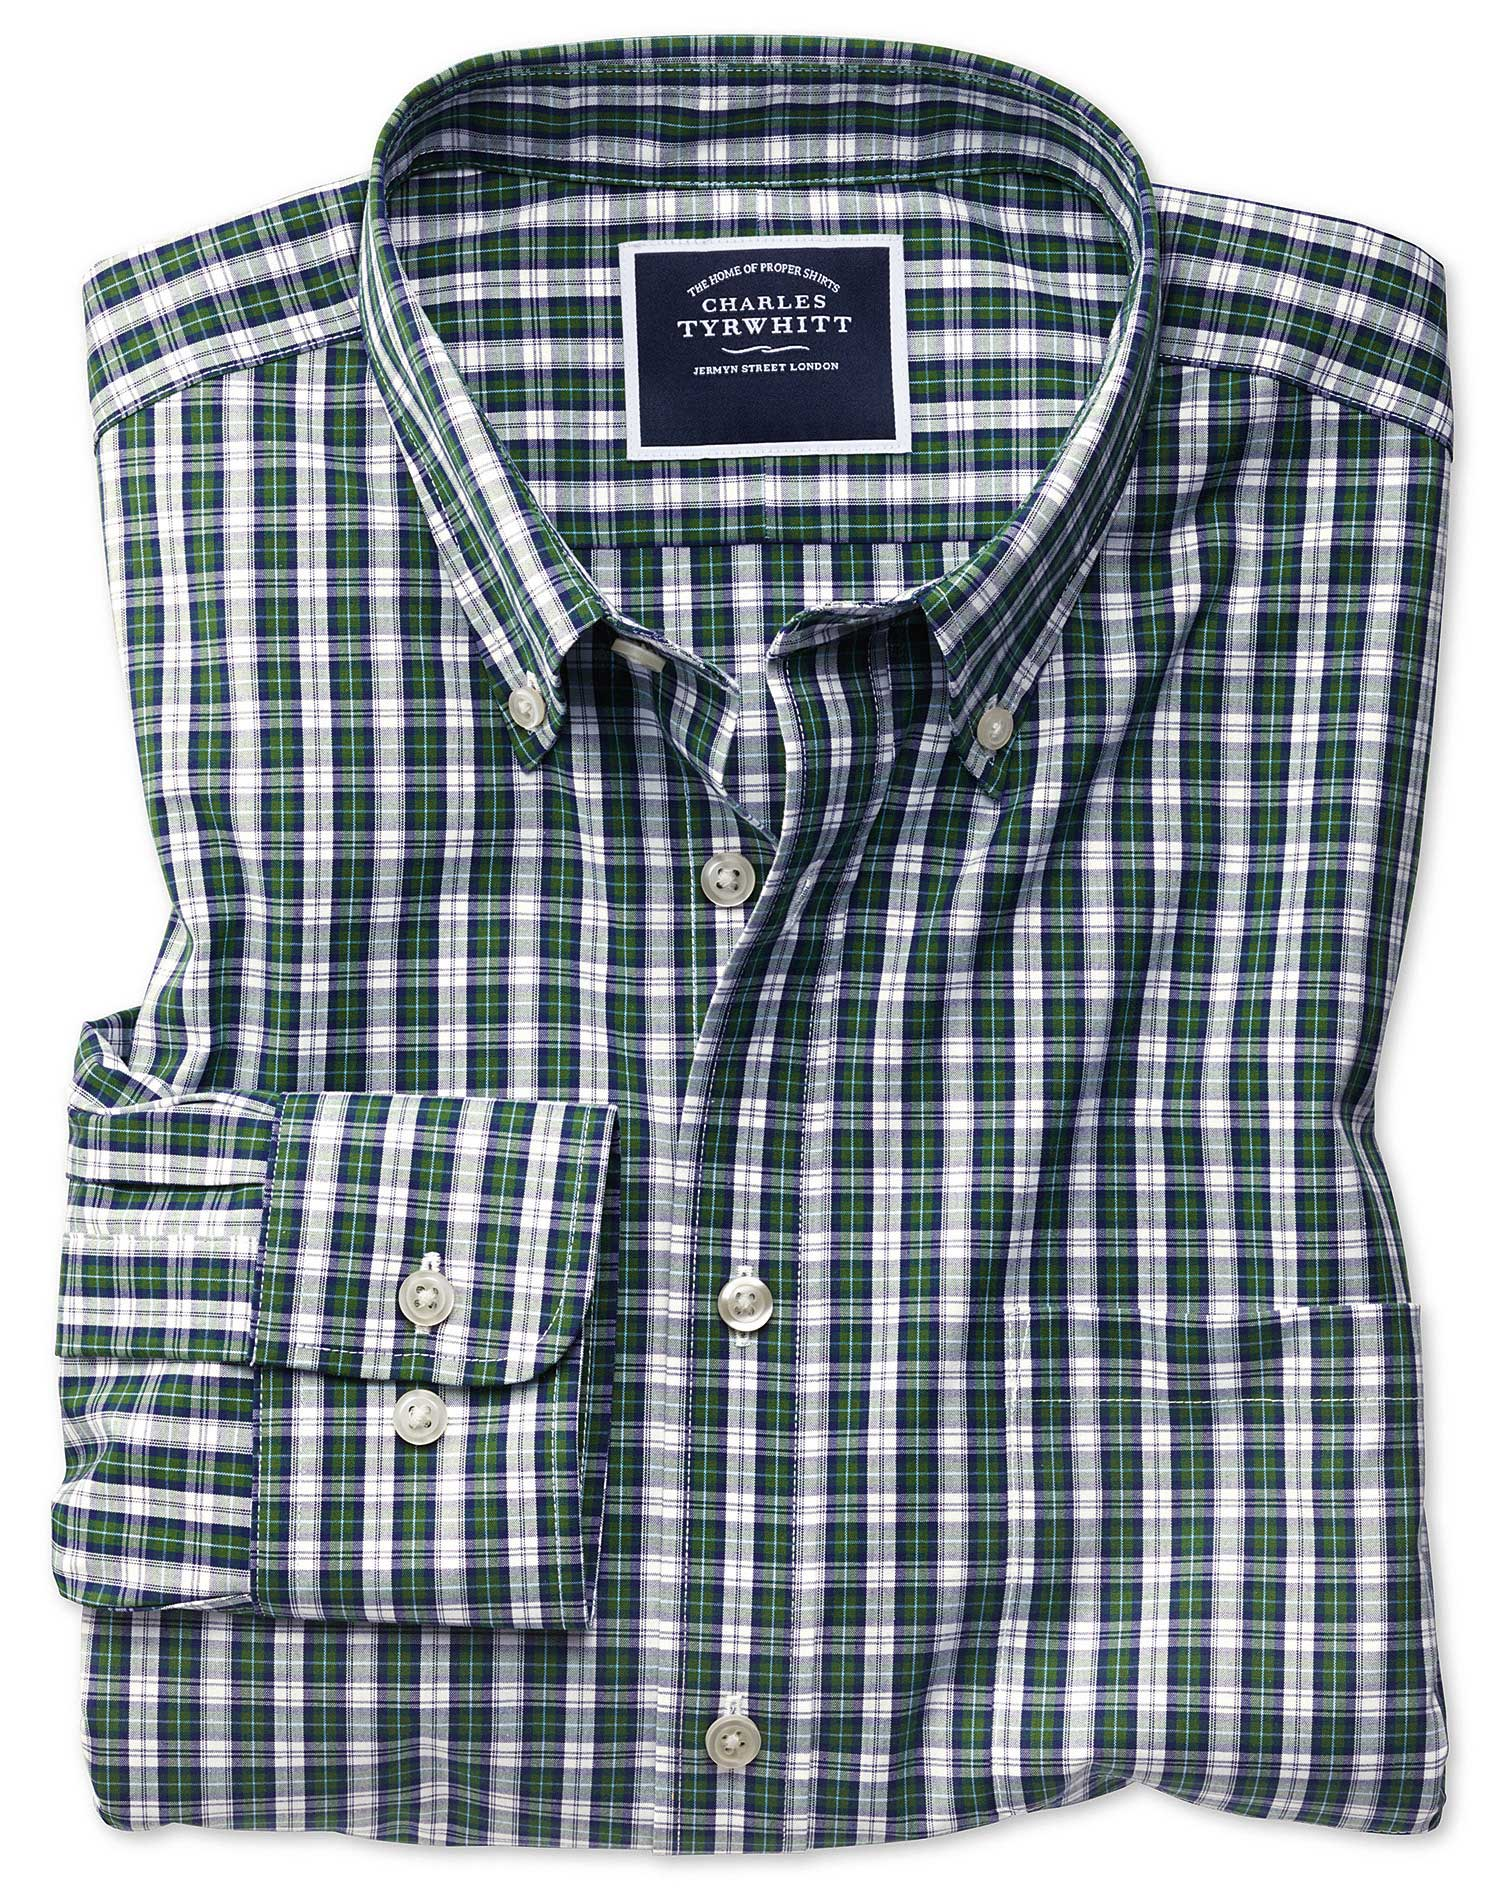 Classic Fit Non-Iron Green and Navy Tartan Check Cotton Shirt Single Cuff Size XXXL by Charles Tyrwh